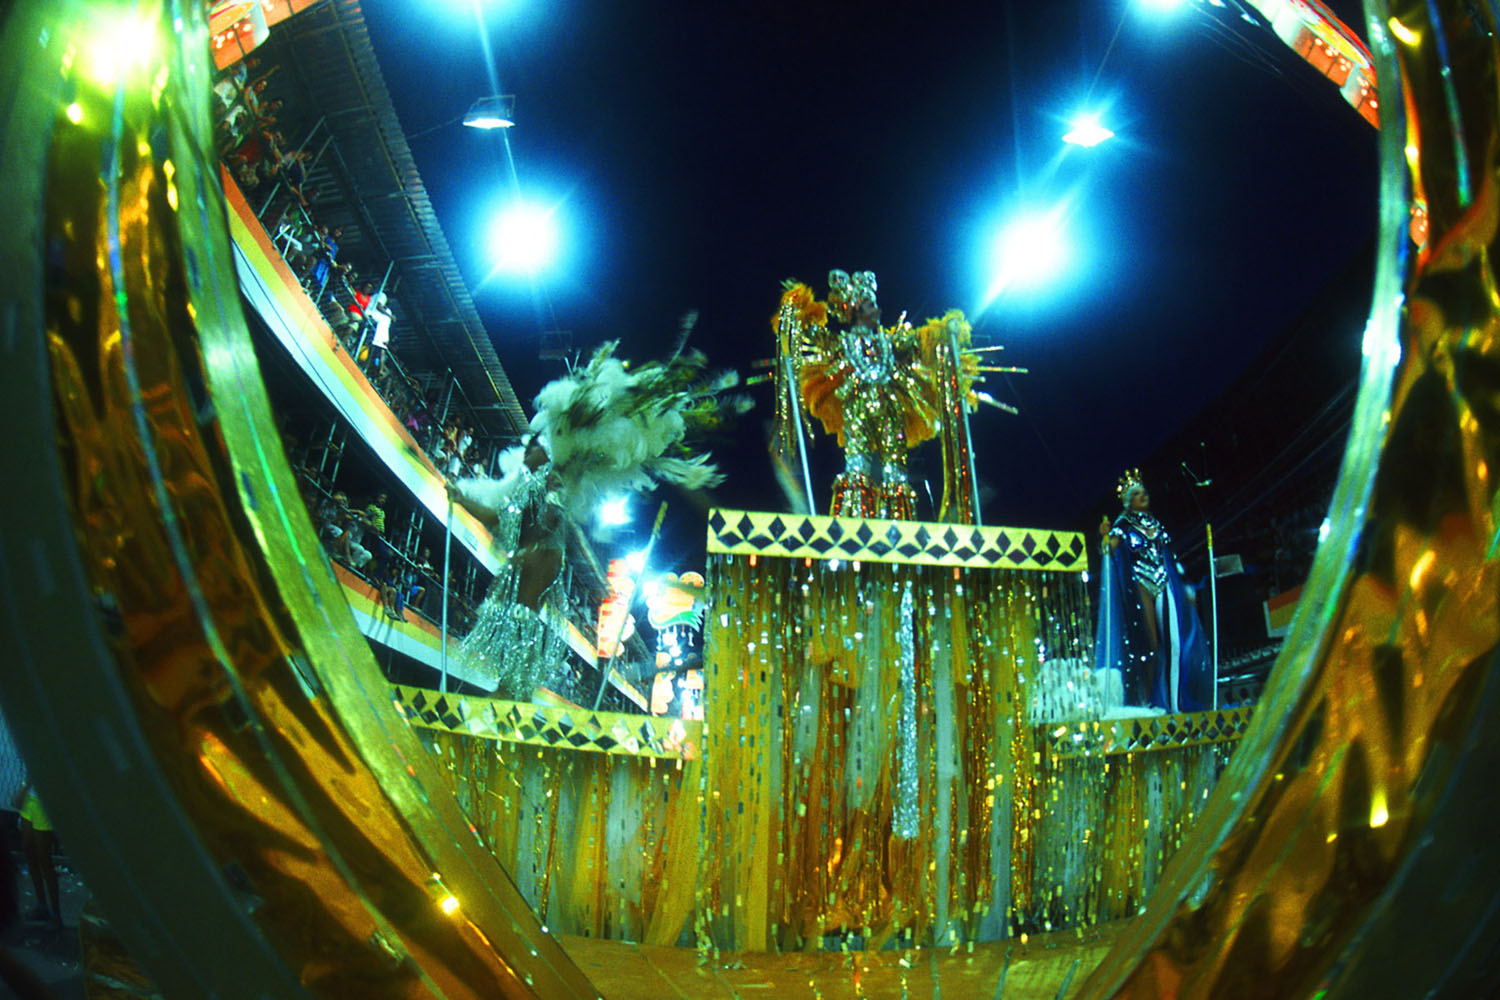 A sparkling Rio Carnival float.